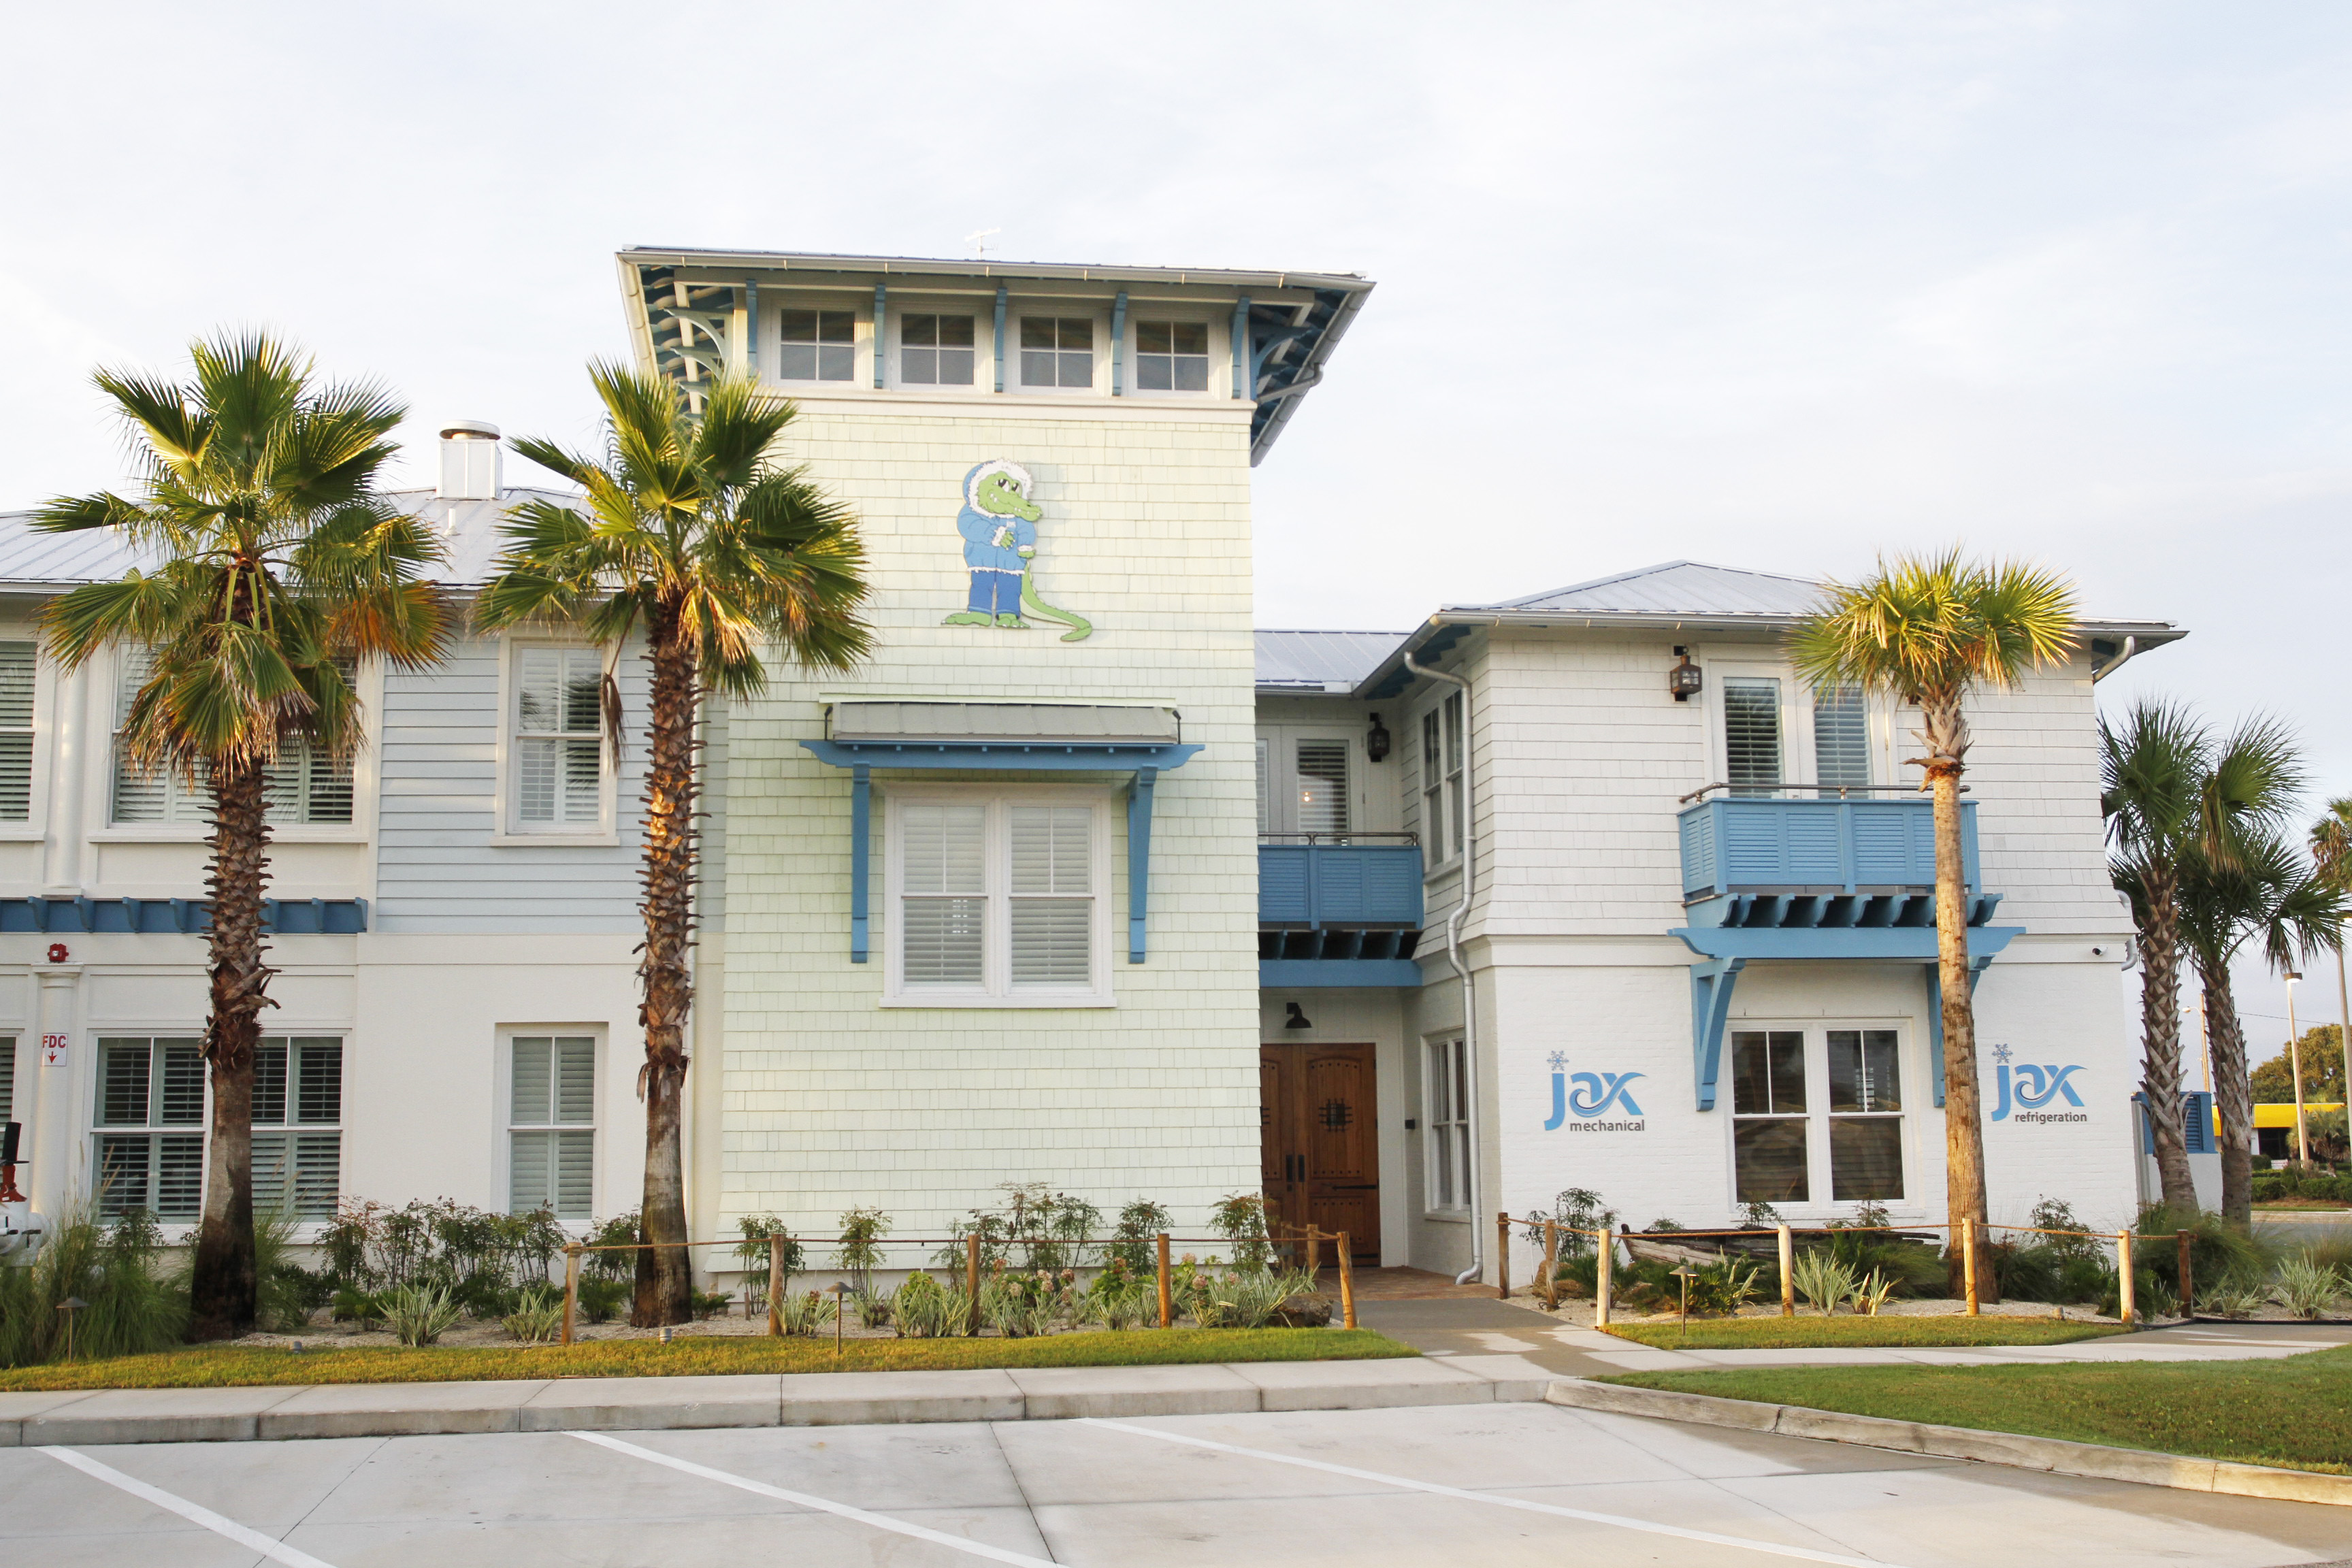 tenant build out jacksonville beach, commercial builder, jax refrigeration, jax beach commercial contractor